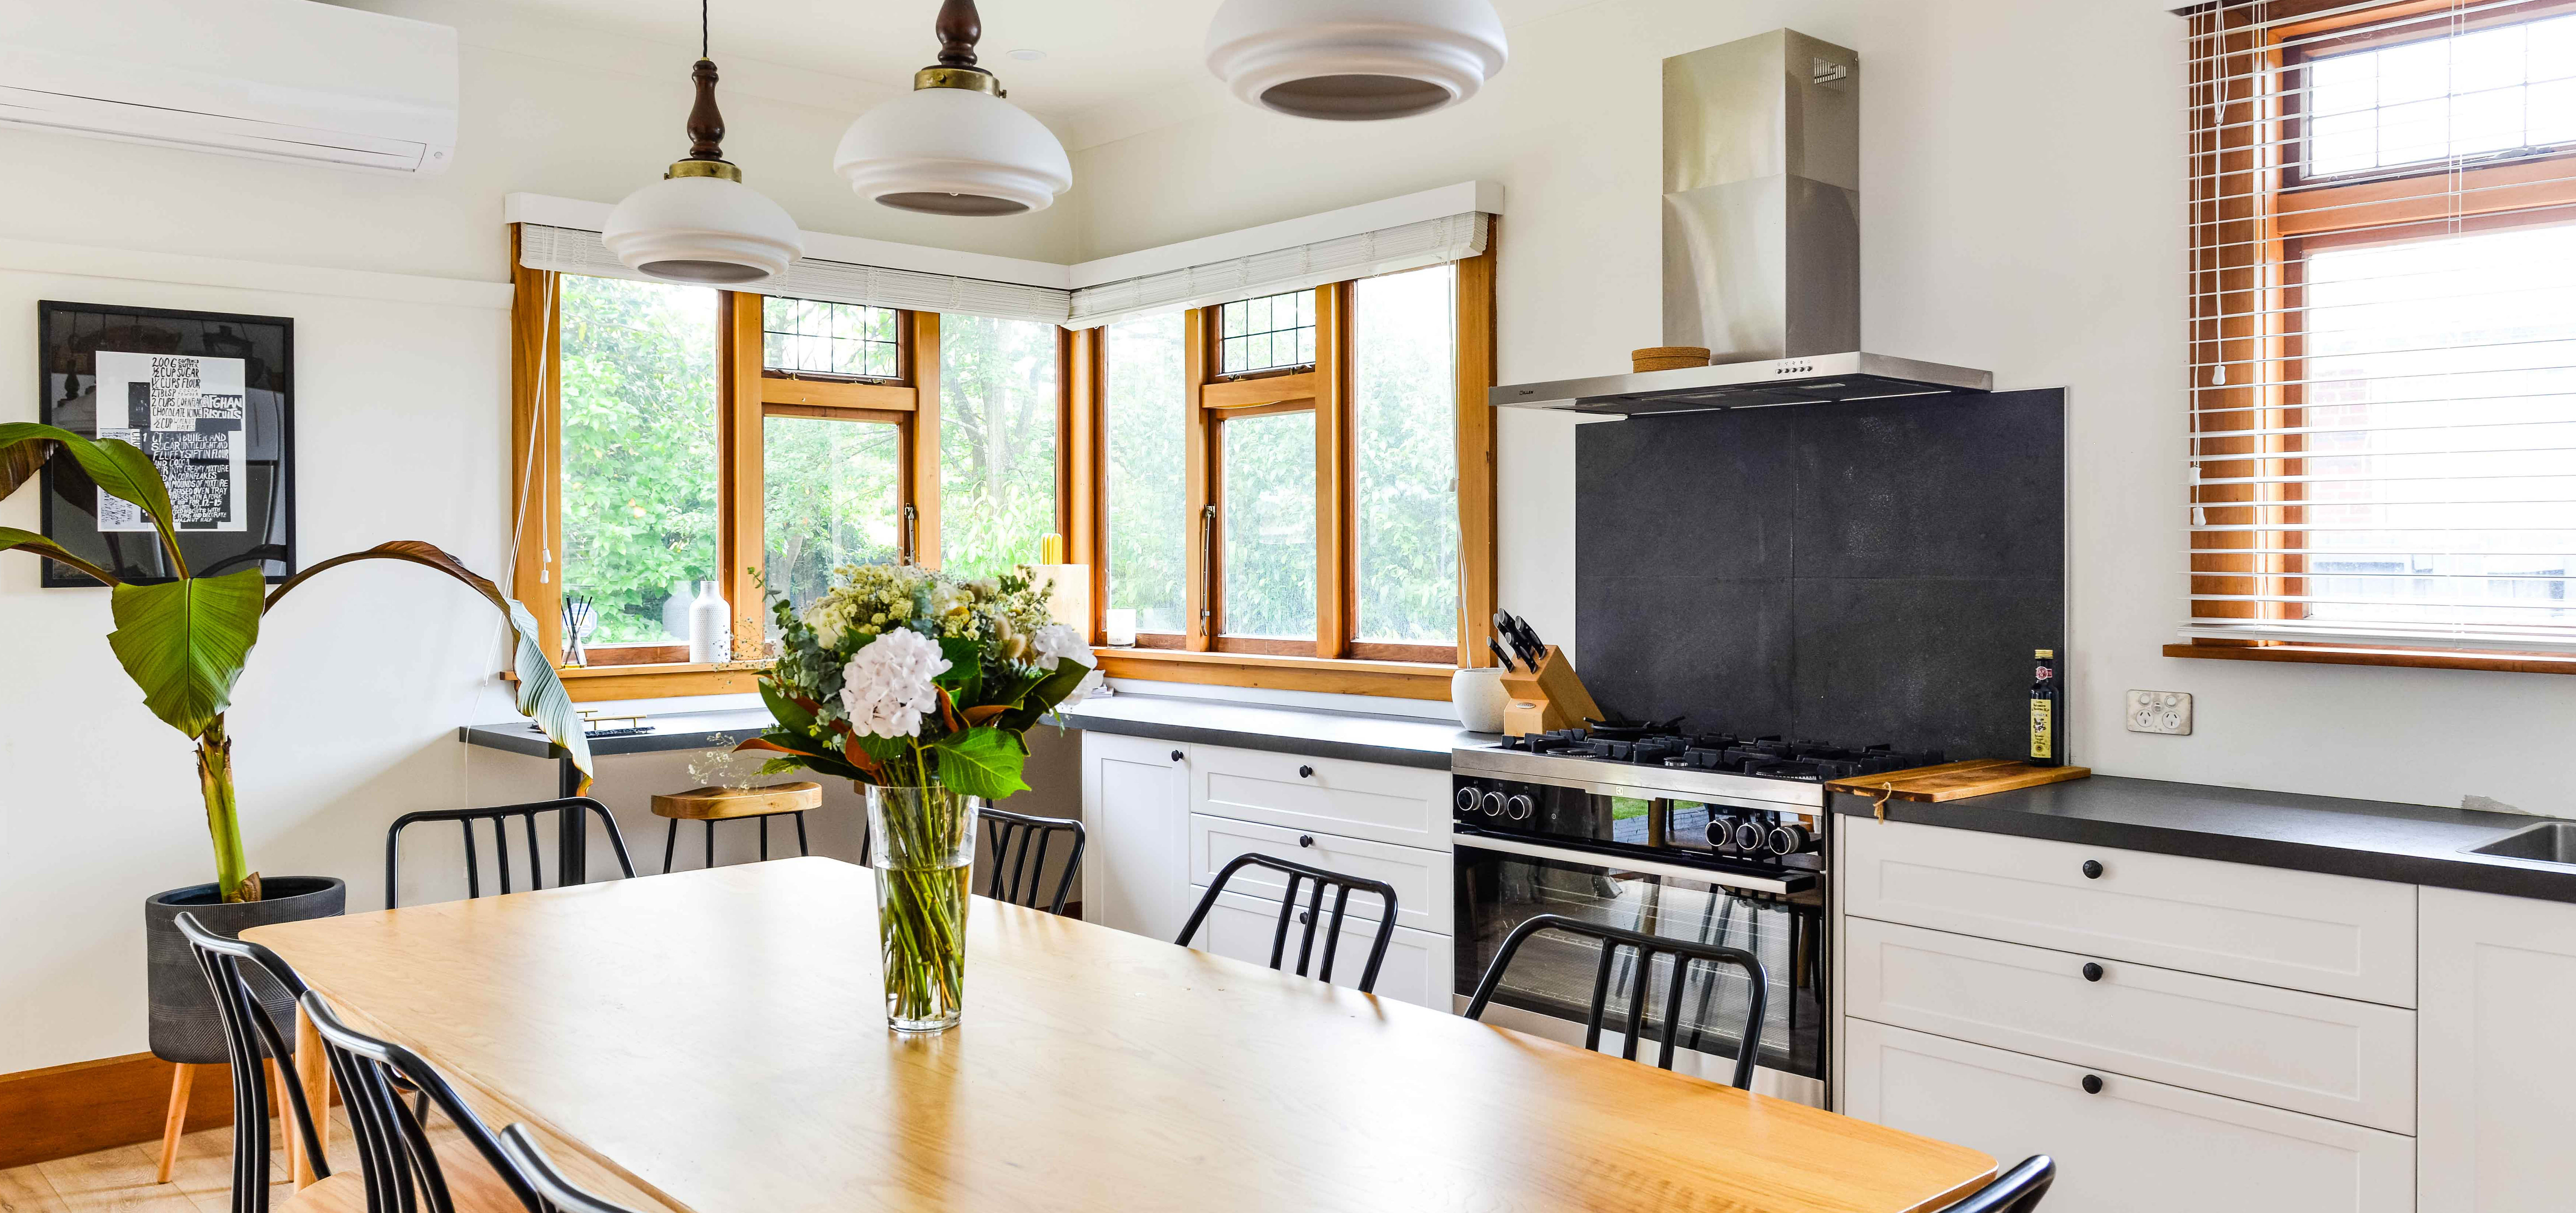 kitchen and dining table with a vase on it